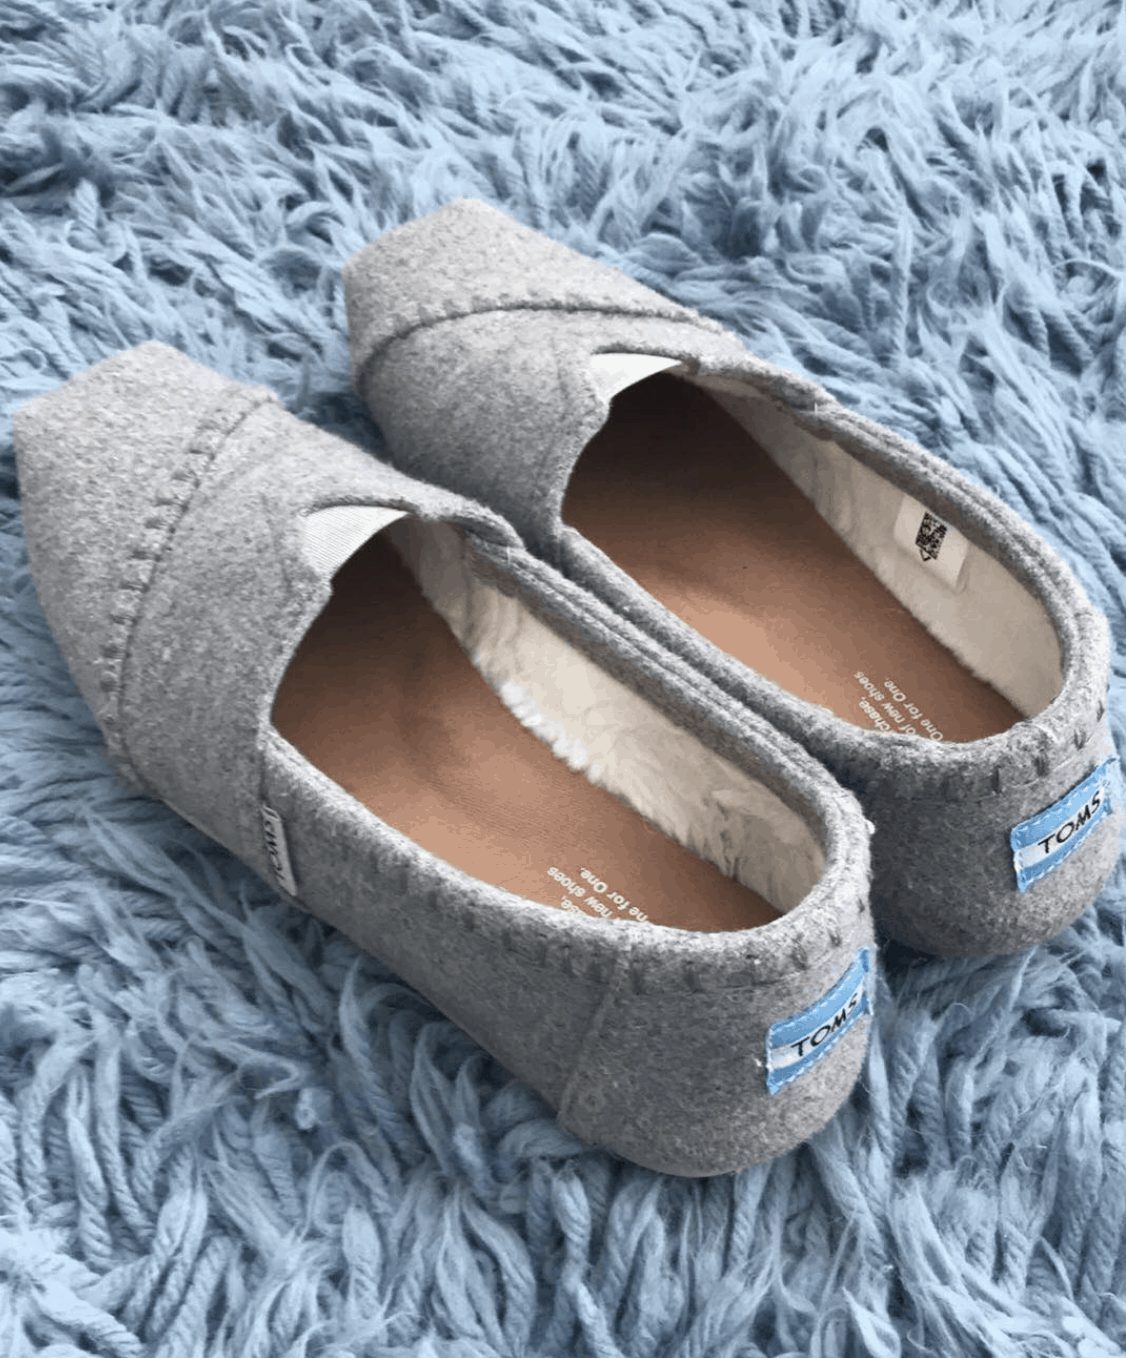 Great S On These Toms If You Need A Pair For Summer And May Get 15 Off 75 When Sign Up Emails Too